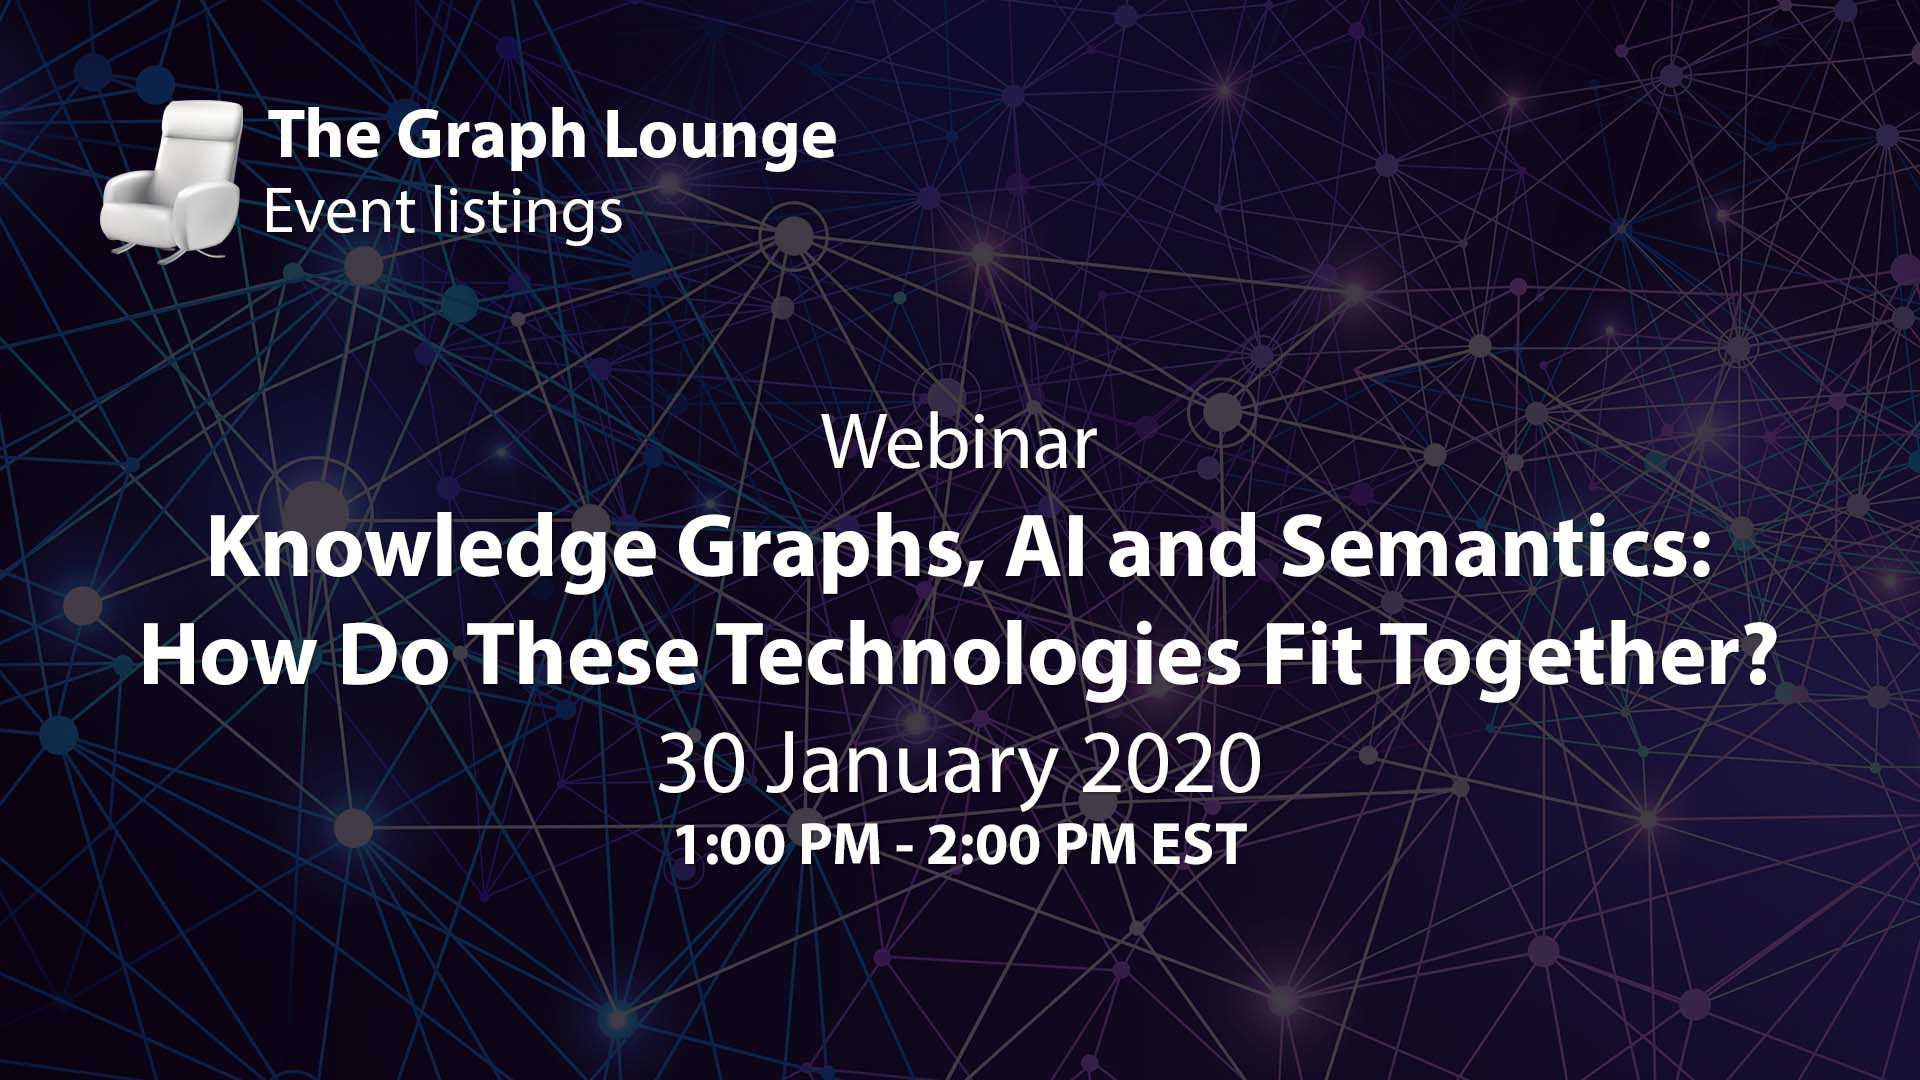 Knowledge Graphs, AI and Semantics: How Do These Technologies Fit Together?